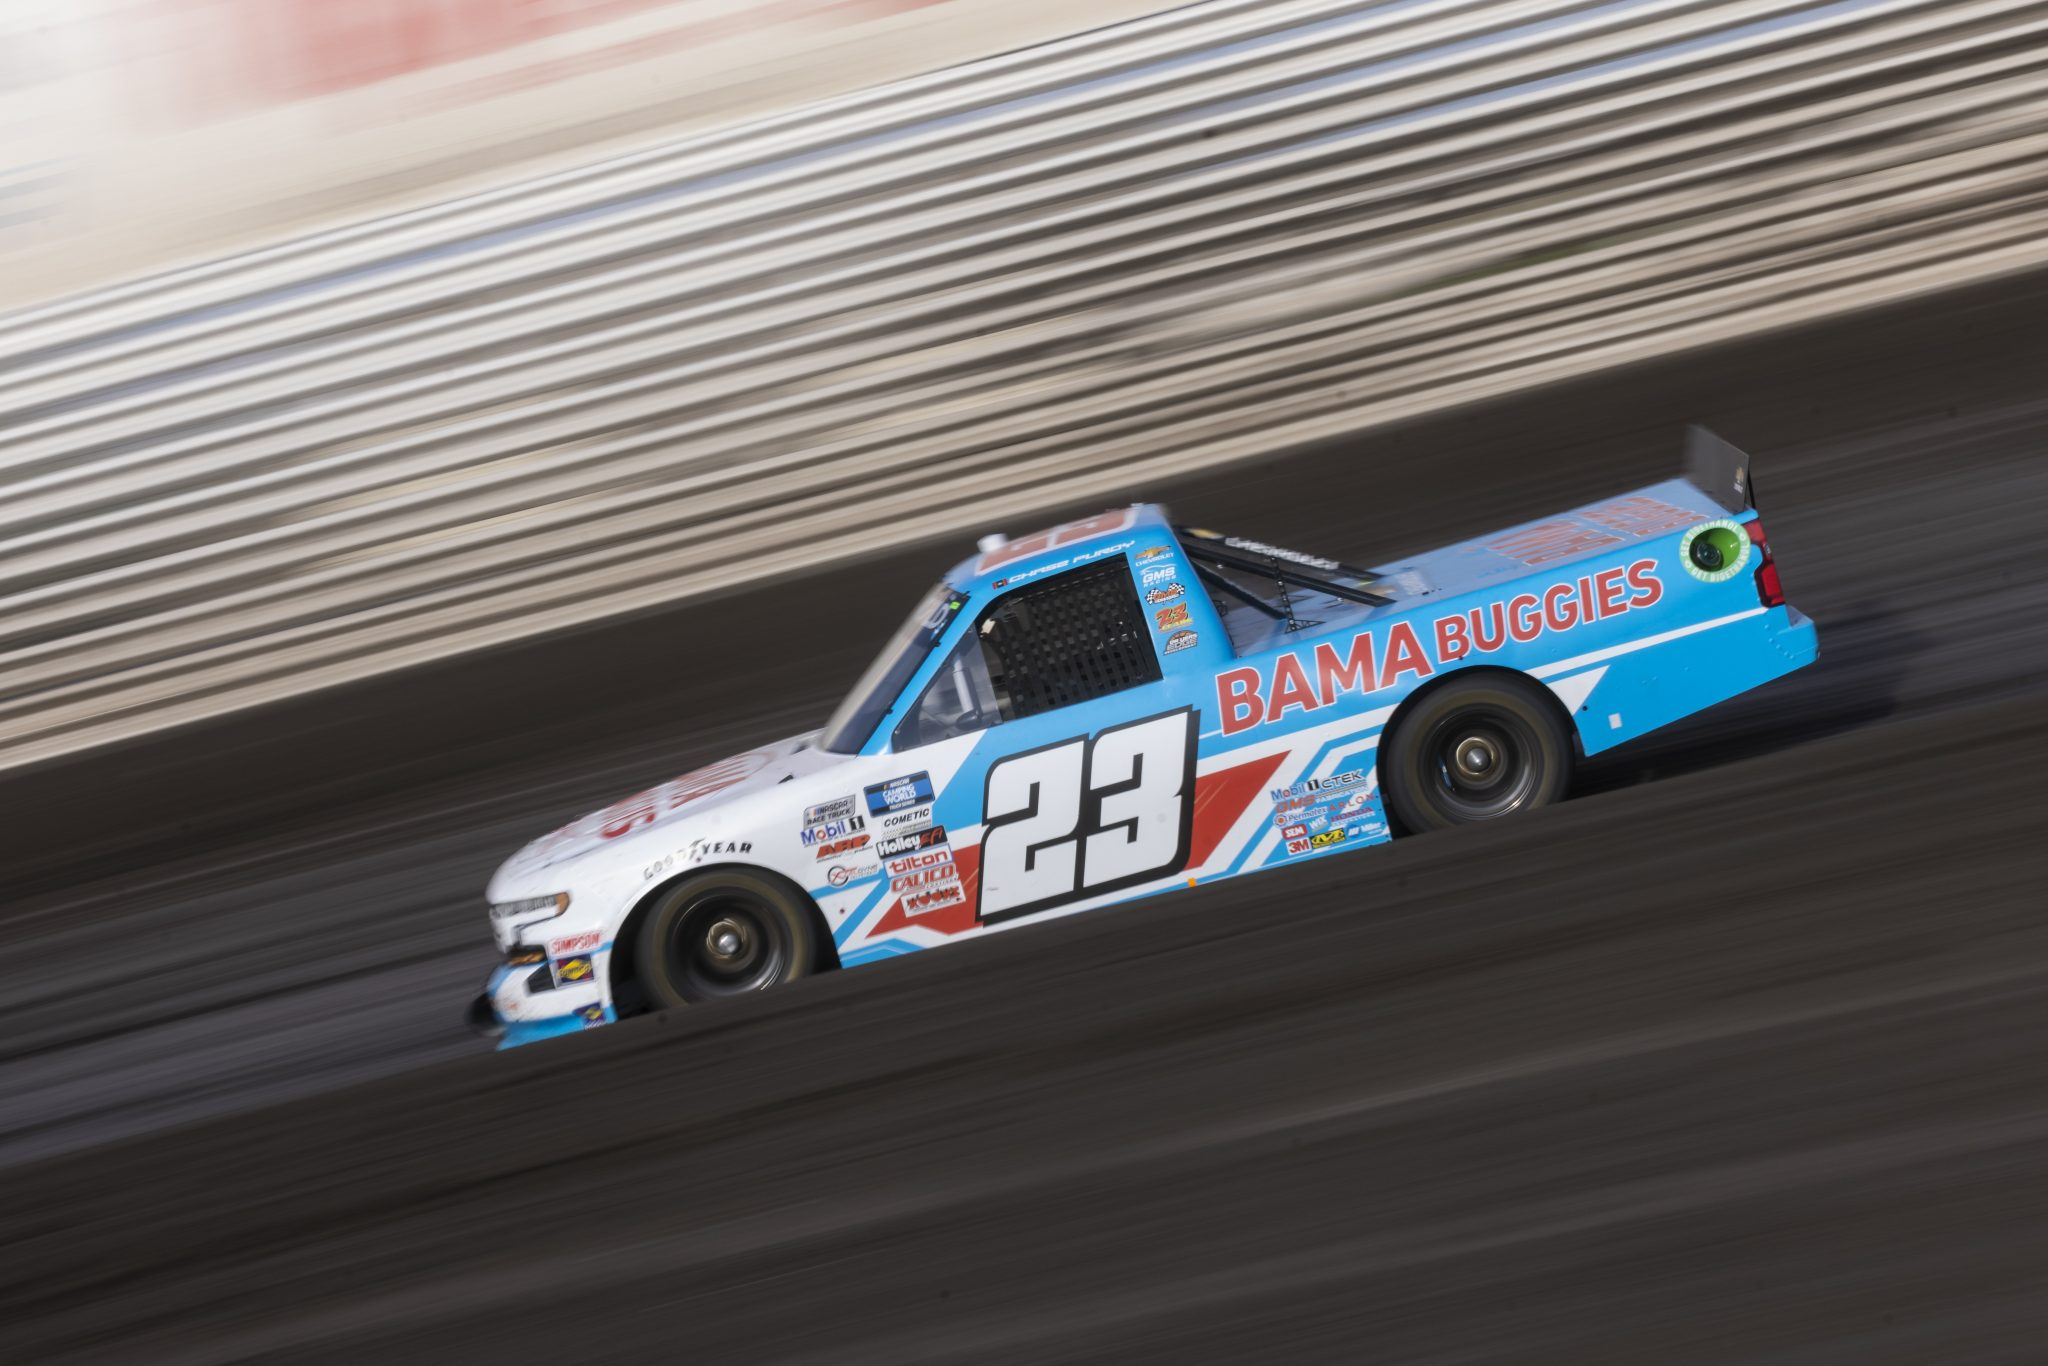 KNOXVILLE, IOWA - JULY 08: Chase Purdy, driver of the #23 BamaBuggies.com Chevrolet, drives during practice for the NASCAR Camping World Truck Series Corn Belt 150 presented by Premier Chevy Dealers at Knoxville Raceway on July 08, 2021 in Knoxville, Iowa. (Photo by James Gilbert/Getty Images)   Getty Images